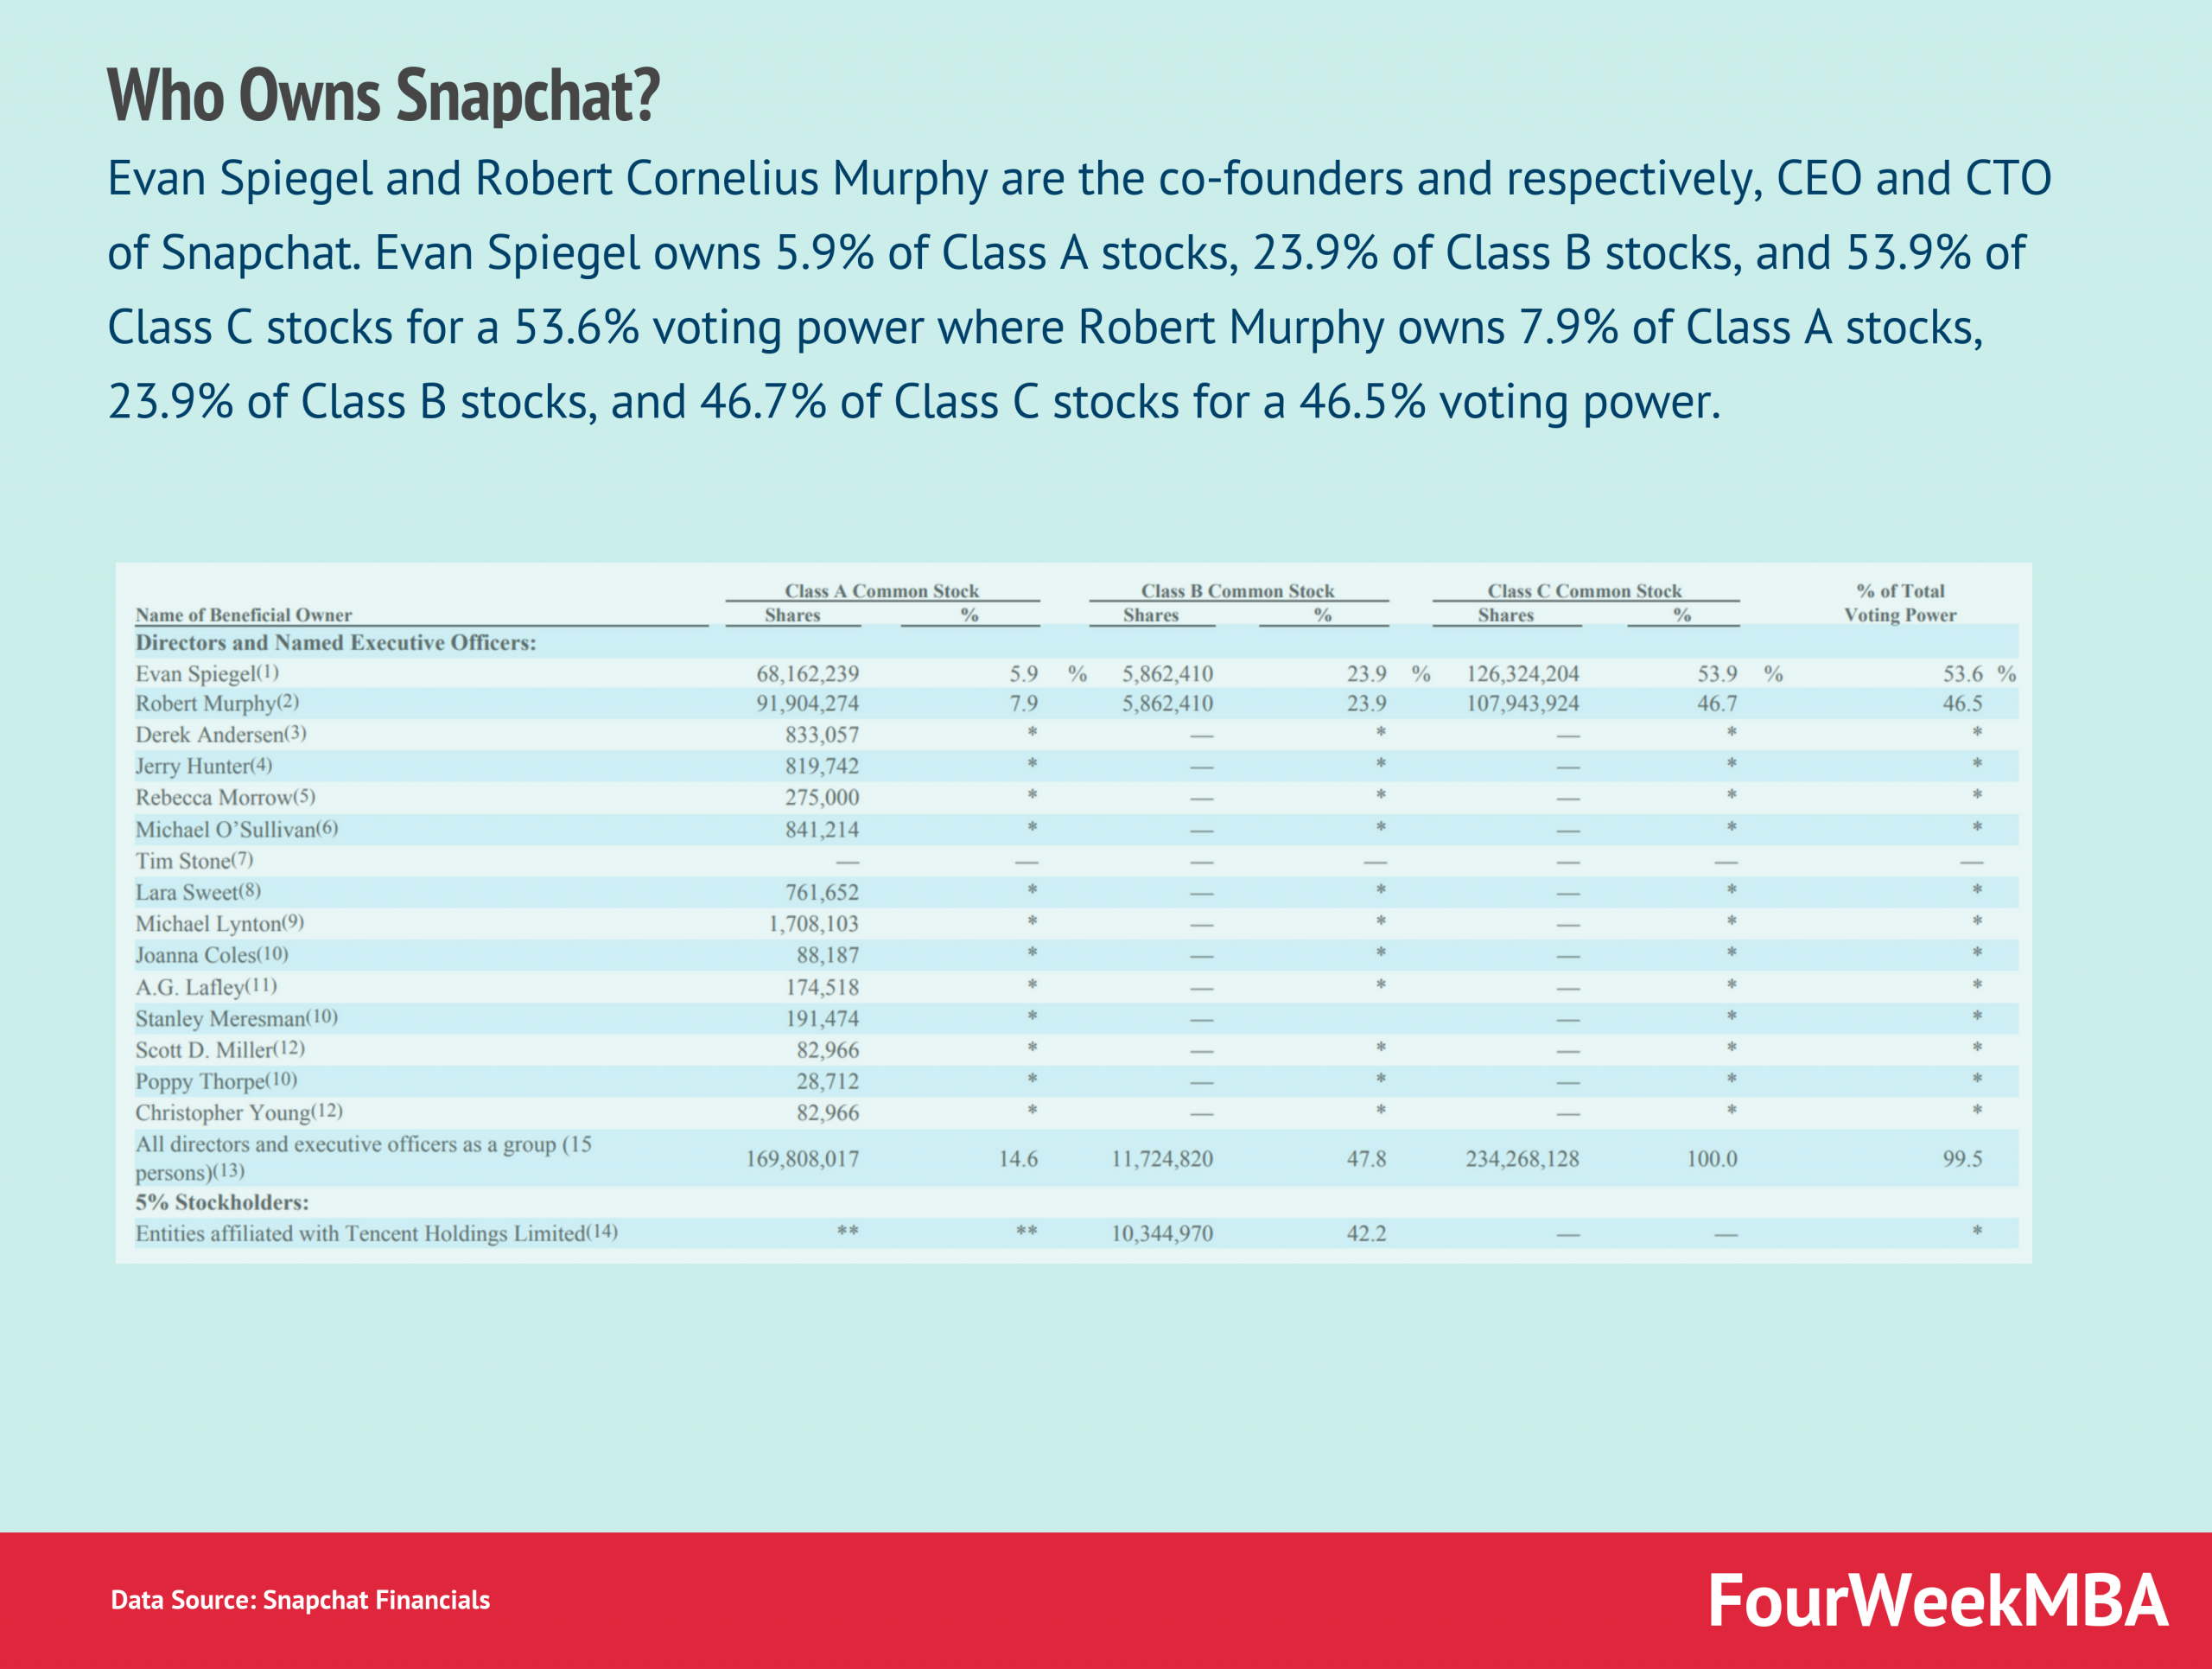 Who Owns Snapchat?